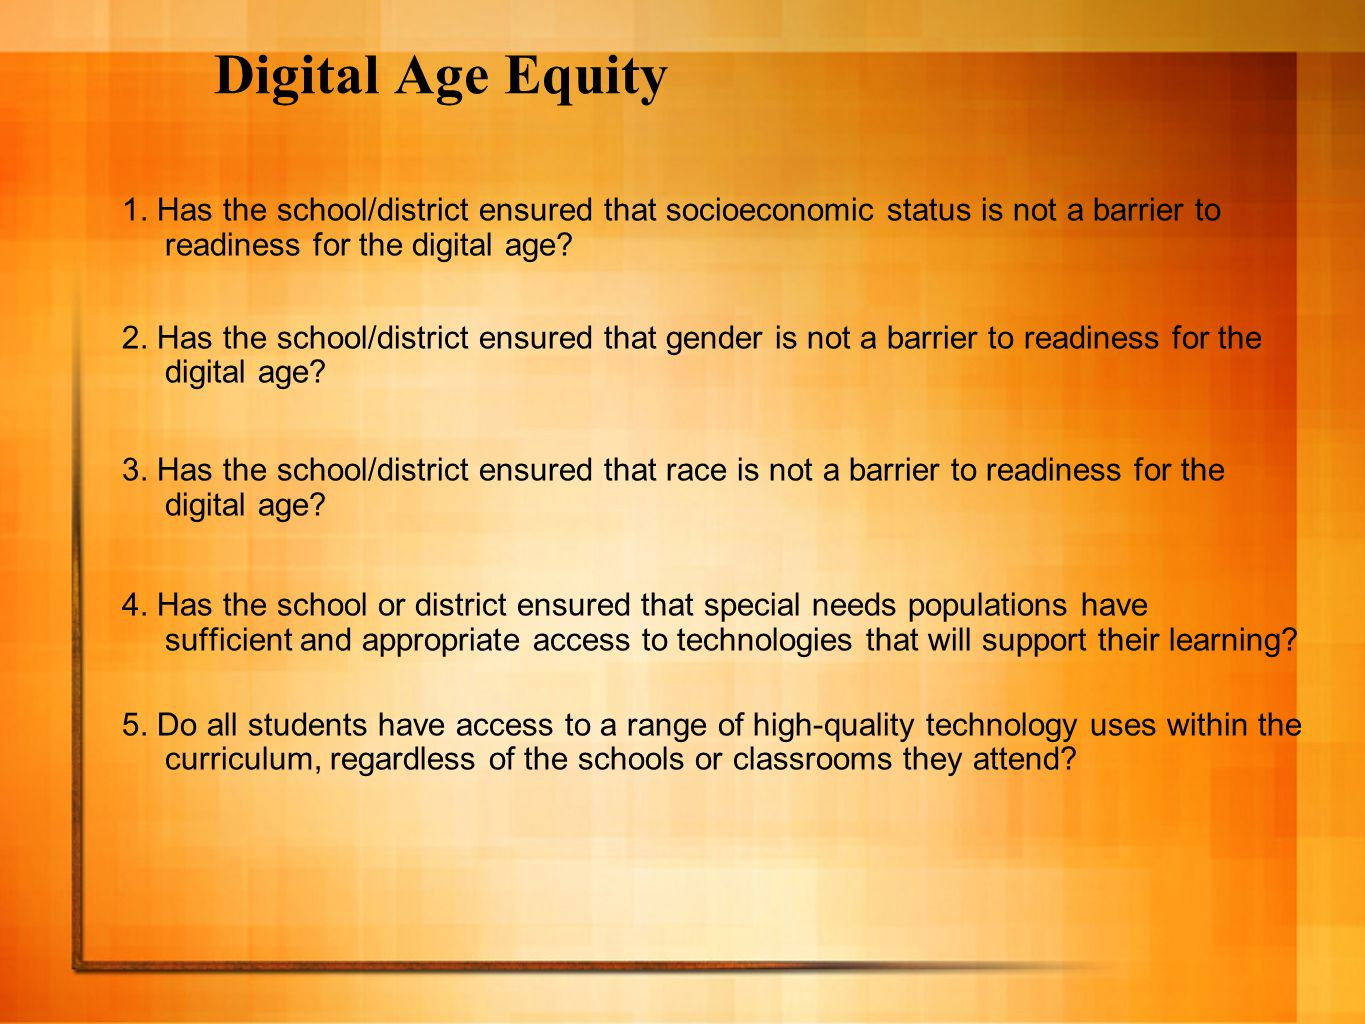 Digital Age Equity 1. Has the school/district ensured that socioeconomic status is not a barrier to readiness for the digital age? 2. Has the school/d